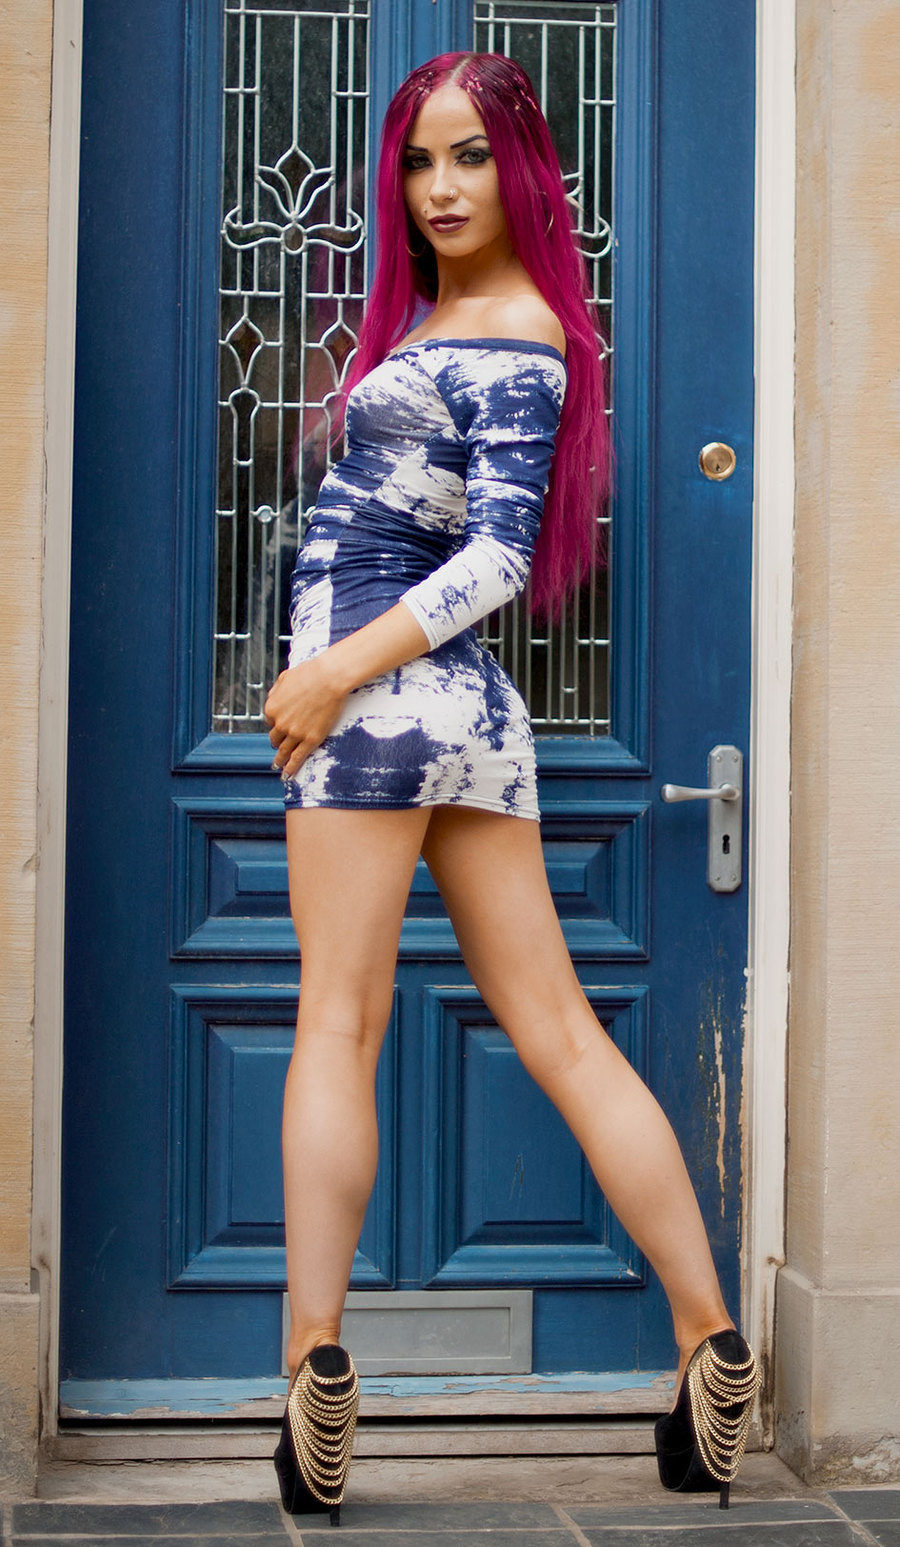 Fashion and Beauty in the Doorway. / Photography by Dennis Bloodnok Photography, Post processing by Dennis Bloodnok Photography / Uploaded 6th April 2015 @ 10:29 AM